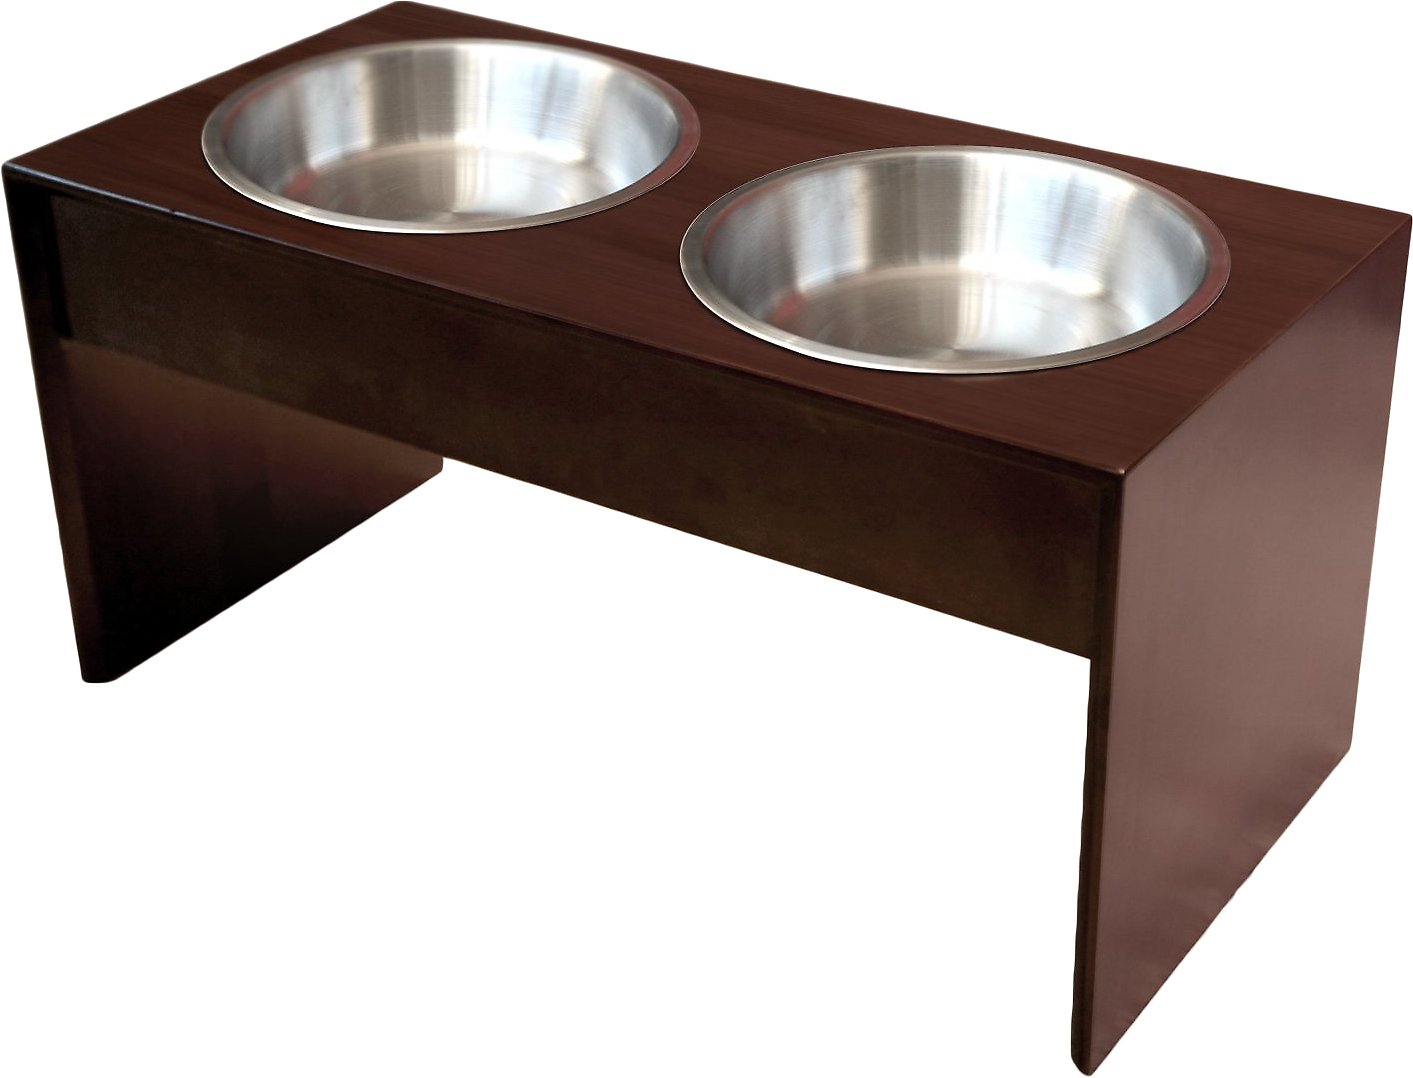 raised stainless com dogs dp dog double small cats perfect bowls and two with feeder amazon for cat bowl steel premium comes stand elevated extra pet